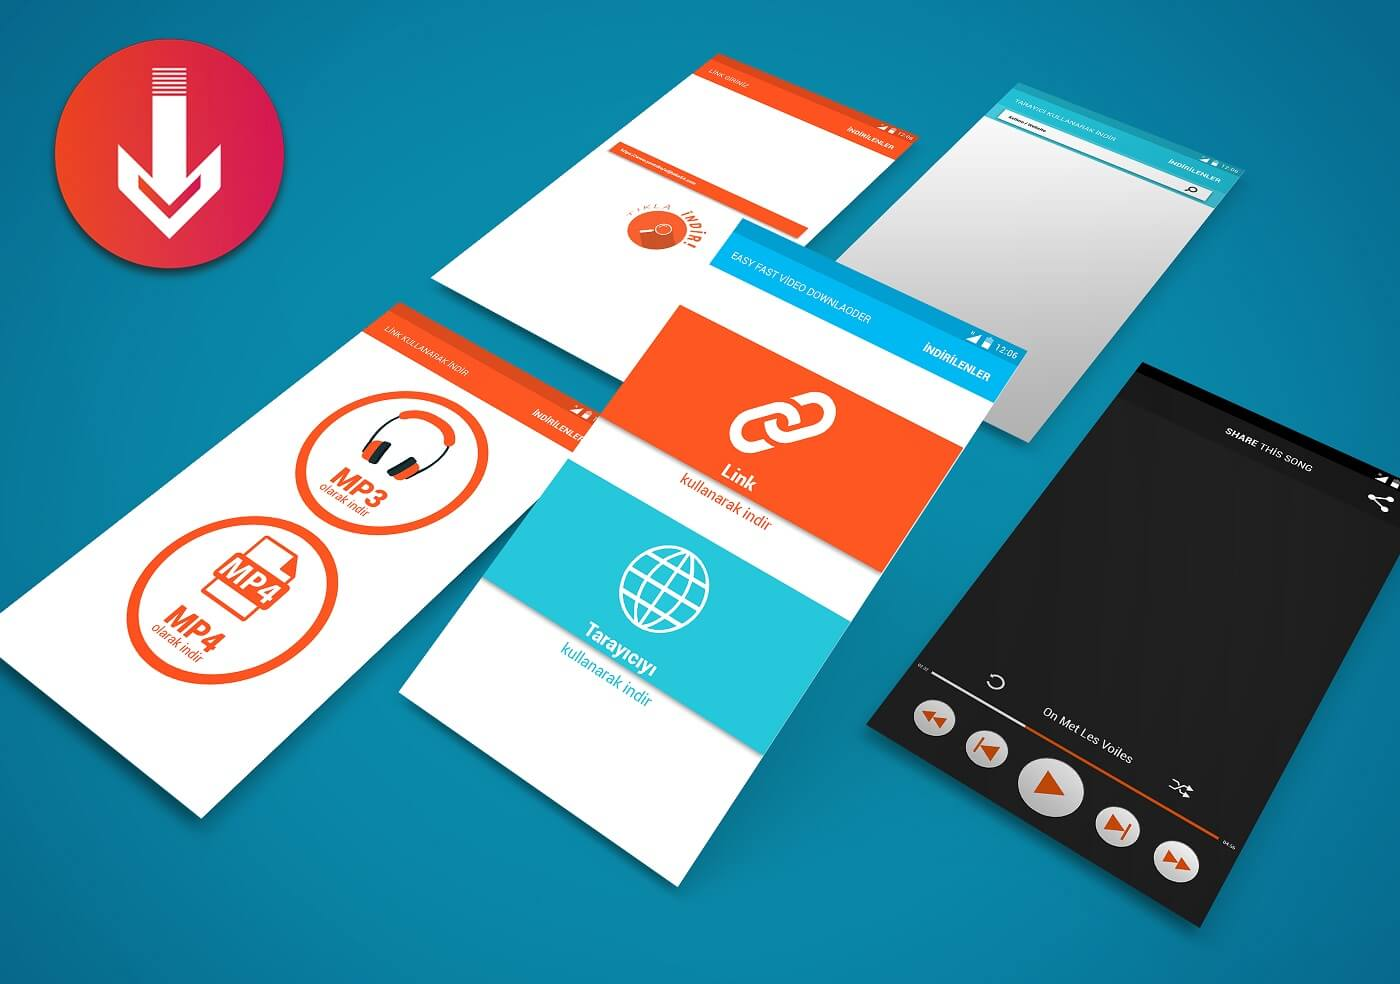 App Screen Showcase Mockup Vol.3